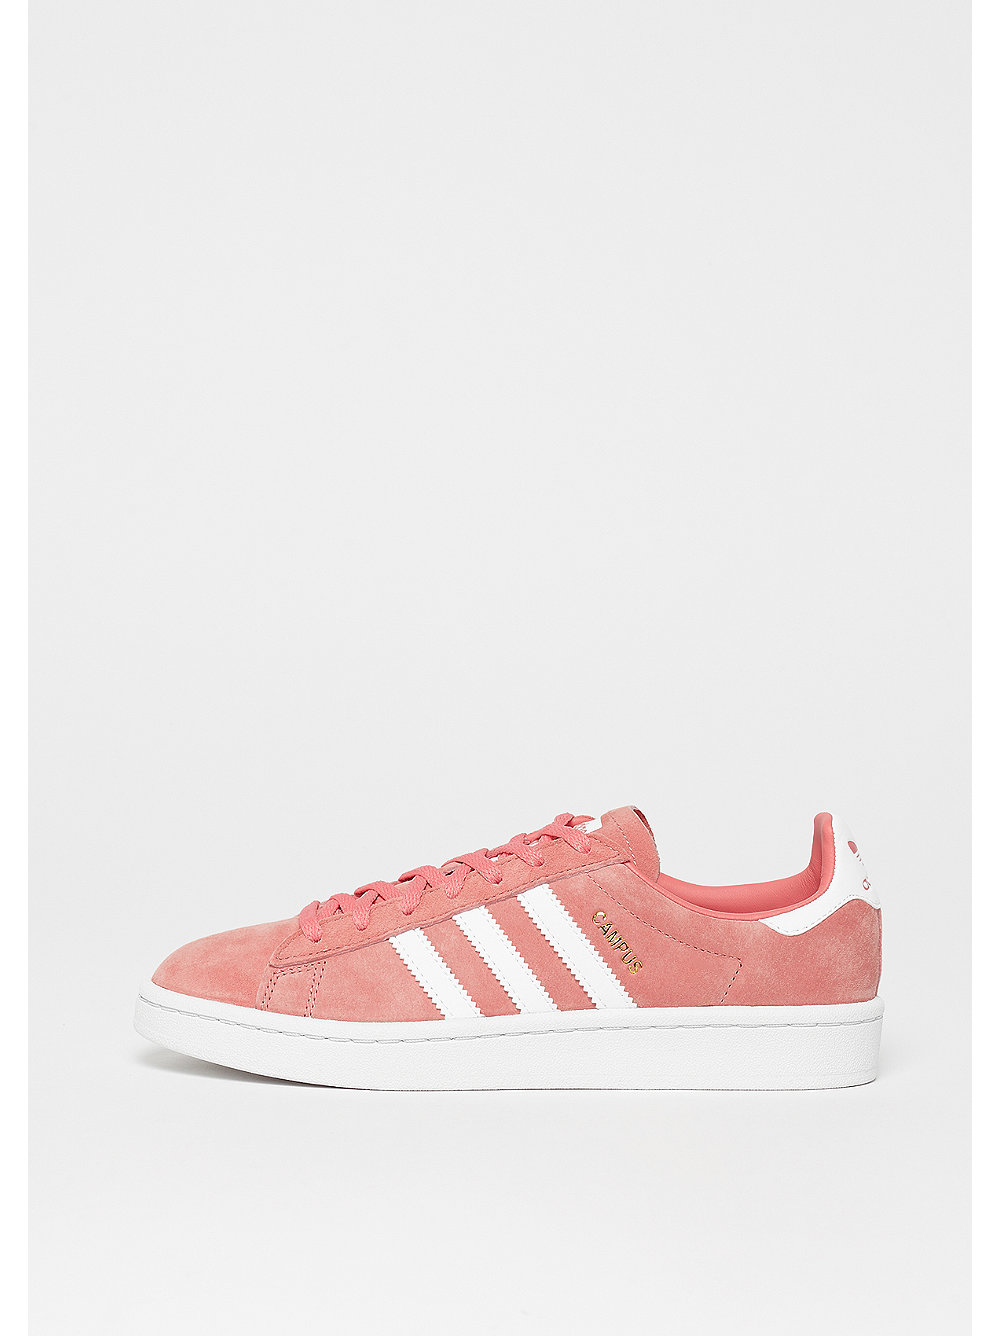 adidas Campus tactile rose/ftwr white/crystal w...